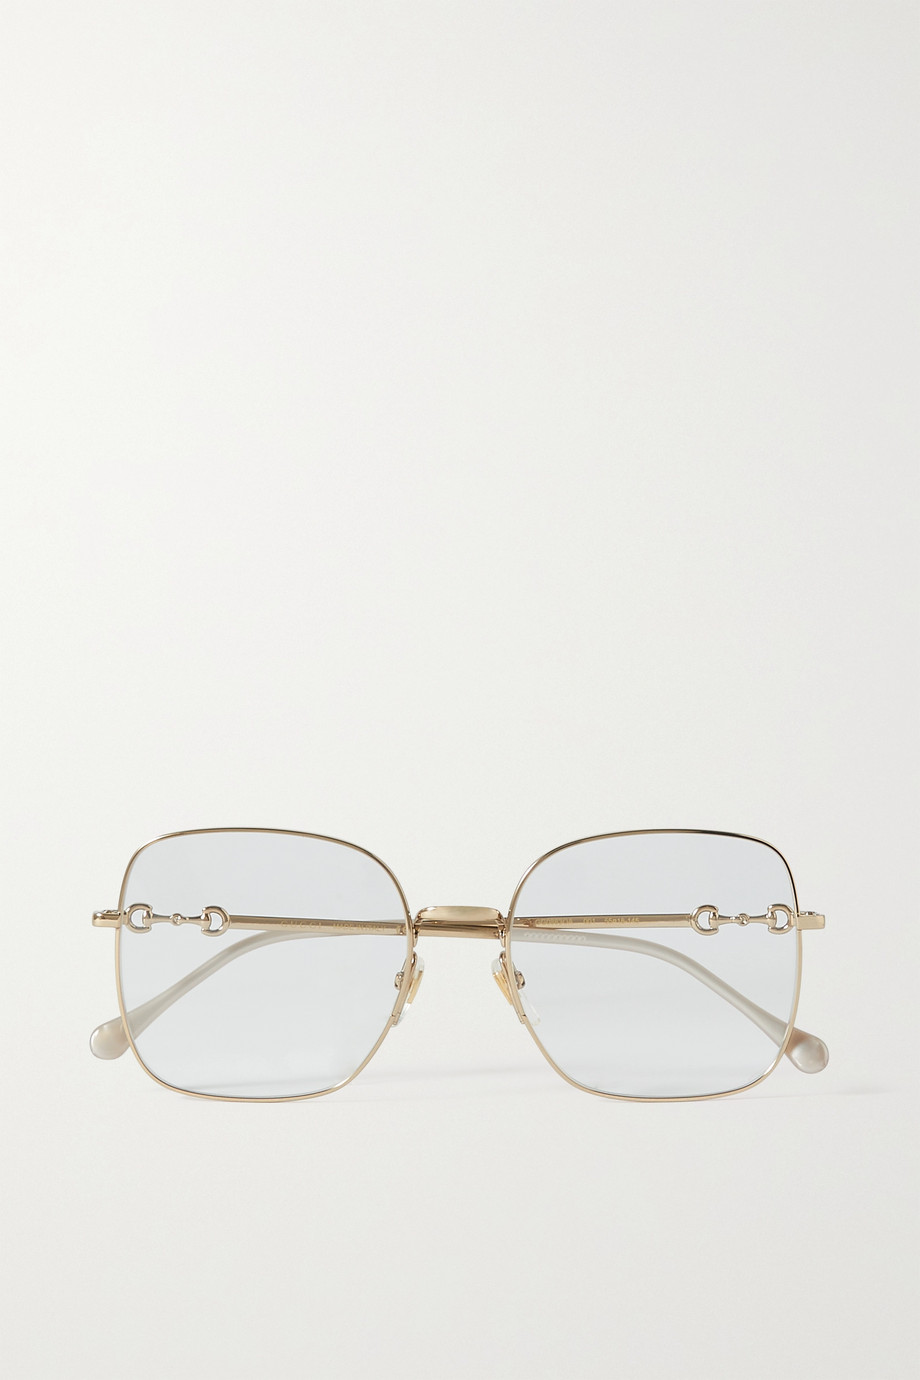 Gucci Horsebit-detailed square-frame gold-tone optical glasses